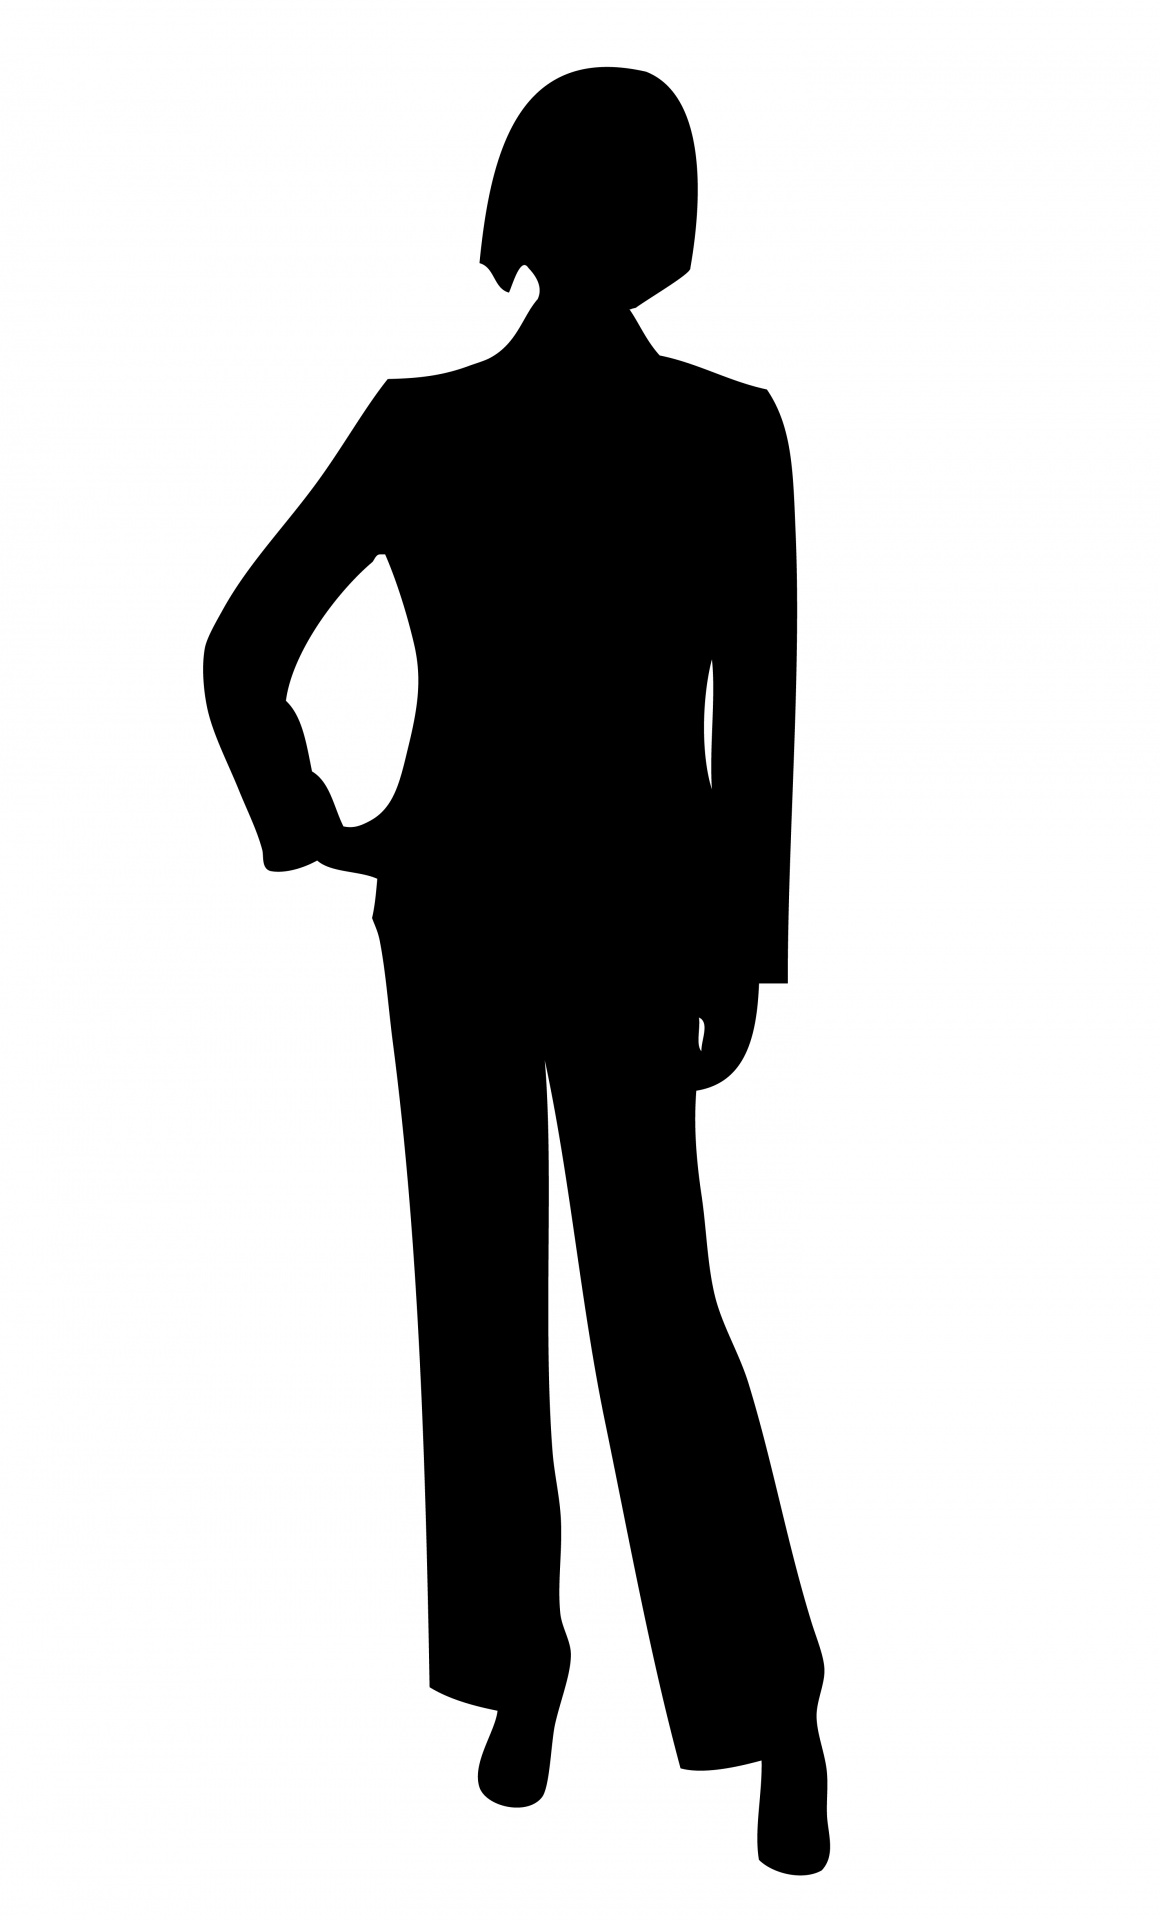 lady silhouette clip art at getdrawings com free for personal use rh getdrawings com clipart female silhouette clipart female male